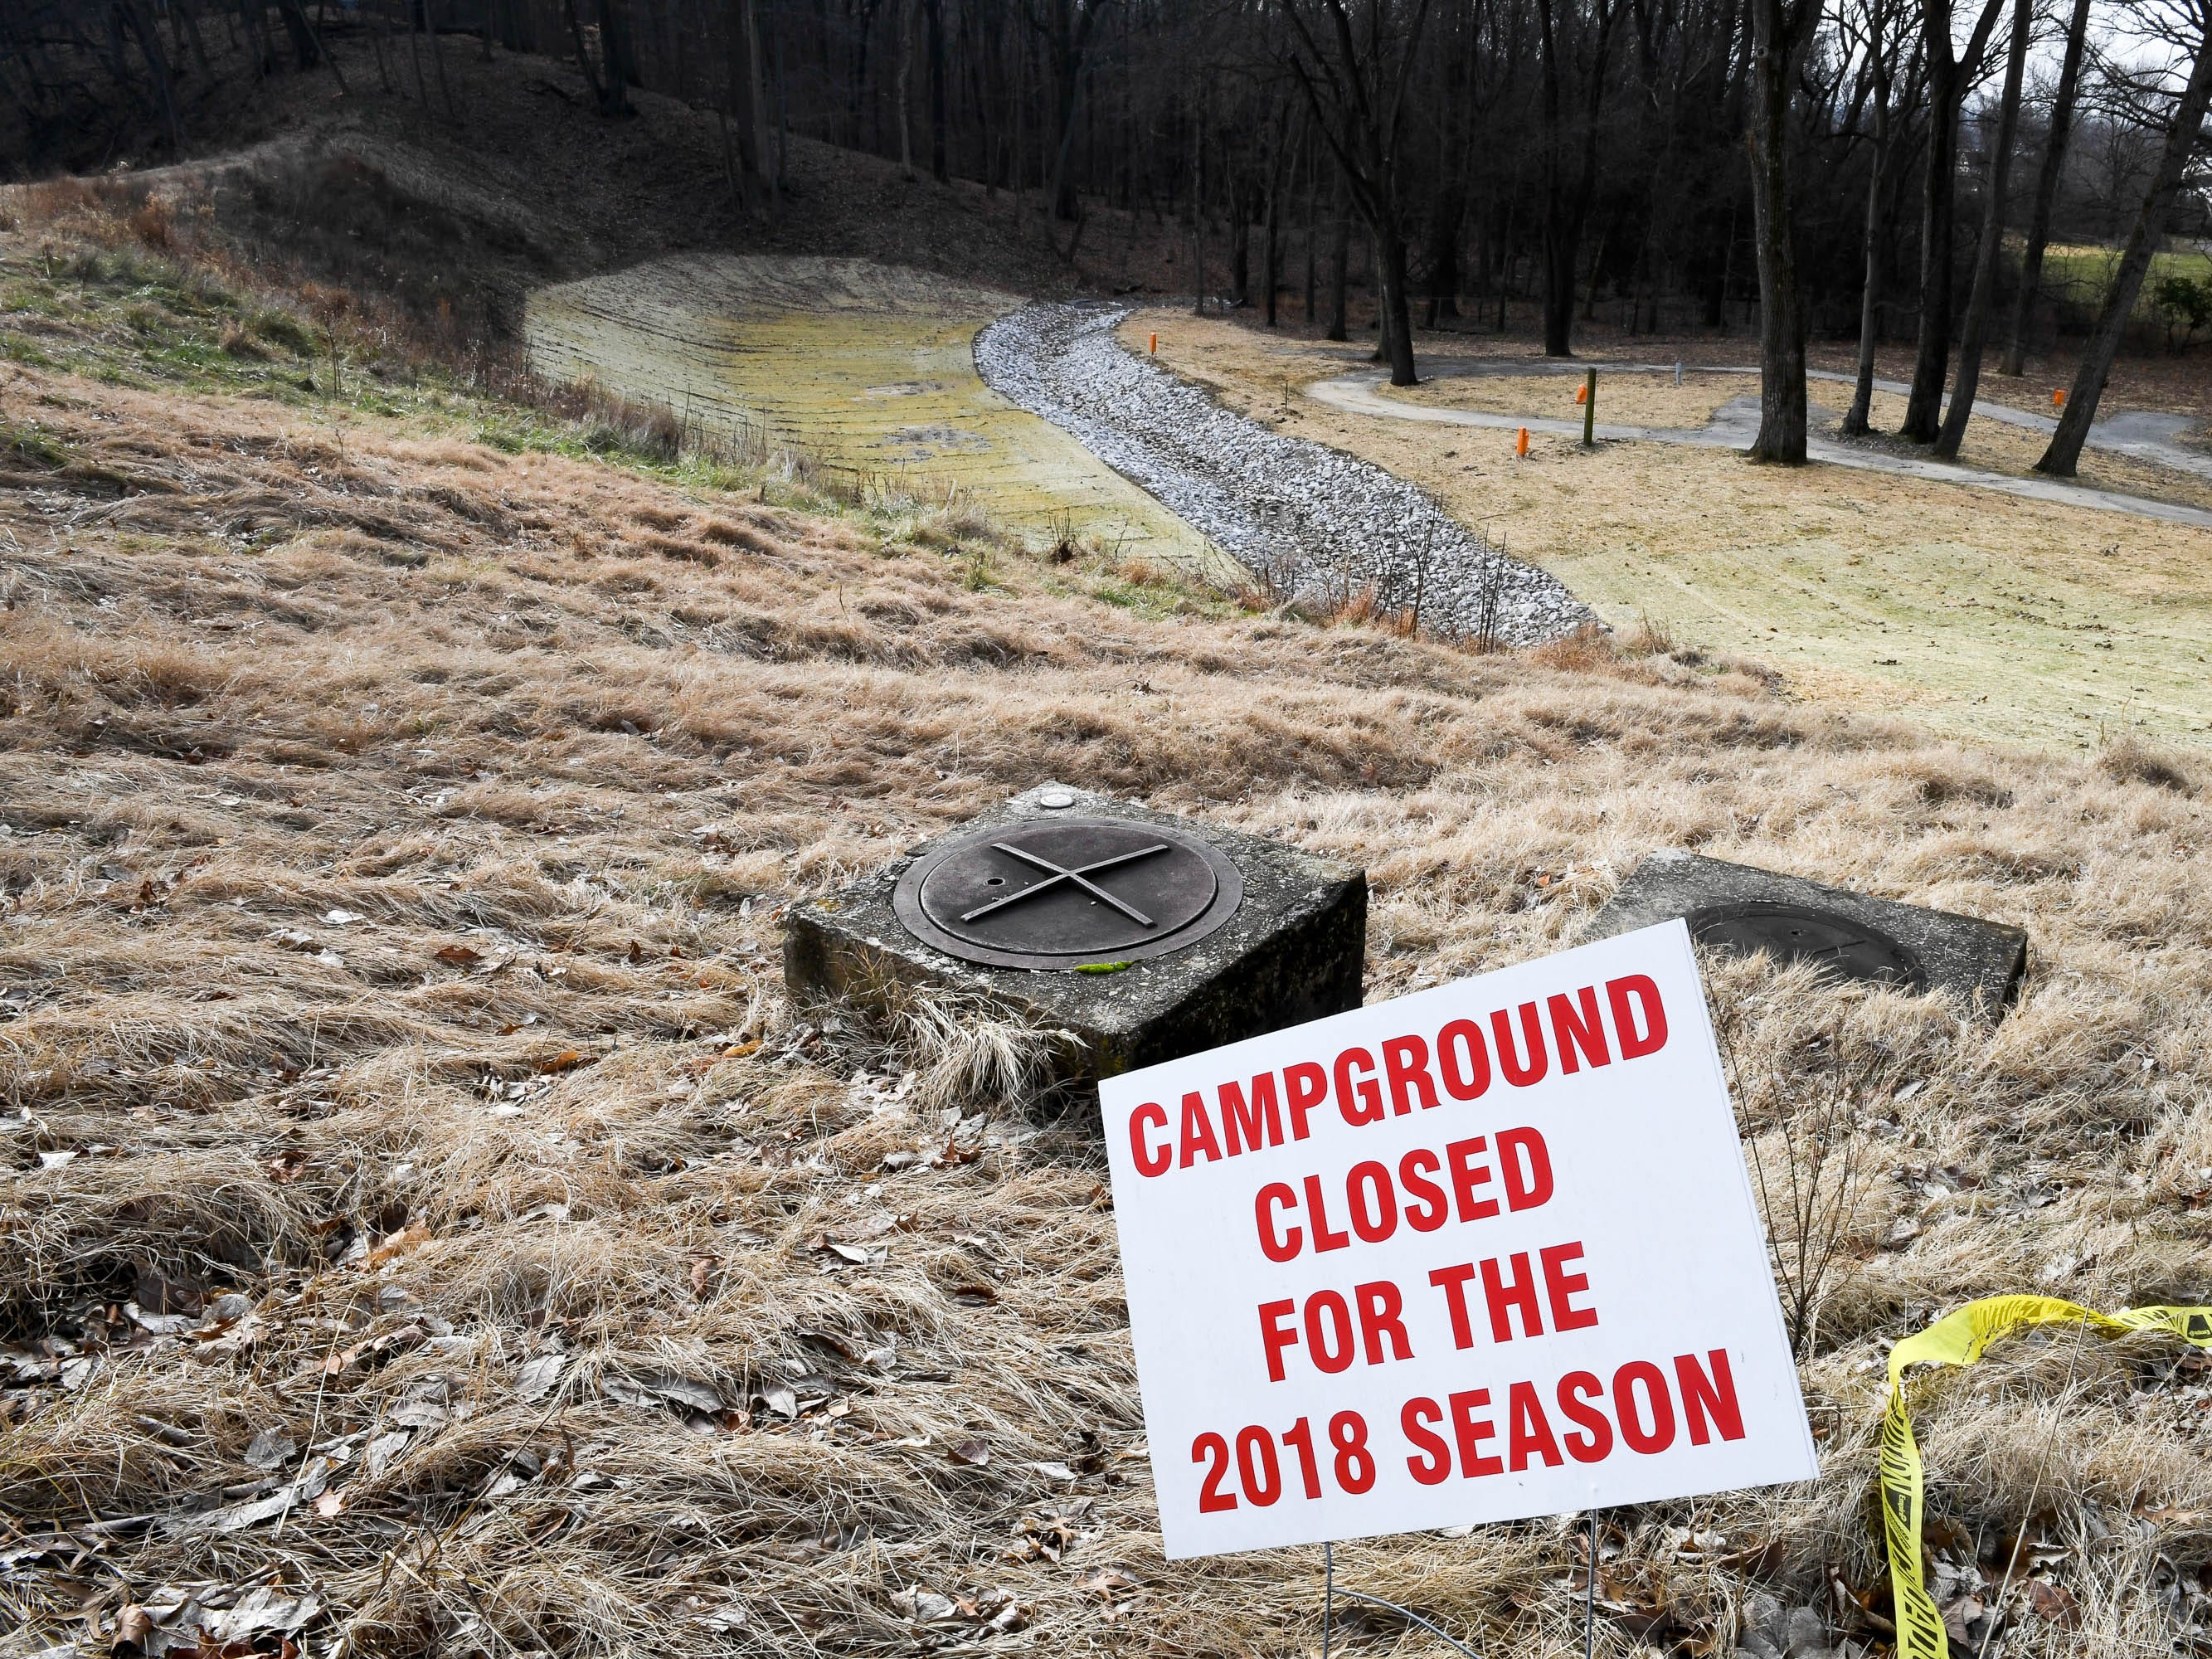 The Scenic Lake dam and the campground behind it at Henderson's John James Audubon State Park Thursday. Closed for the 2018 season for repair and stabilization work, will possibly be closed for all or part of the 2019 season also, January 3, 2019.